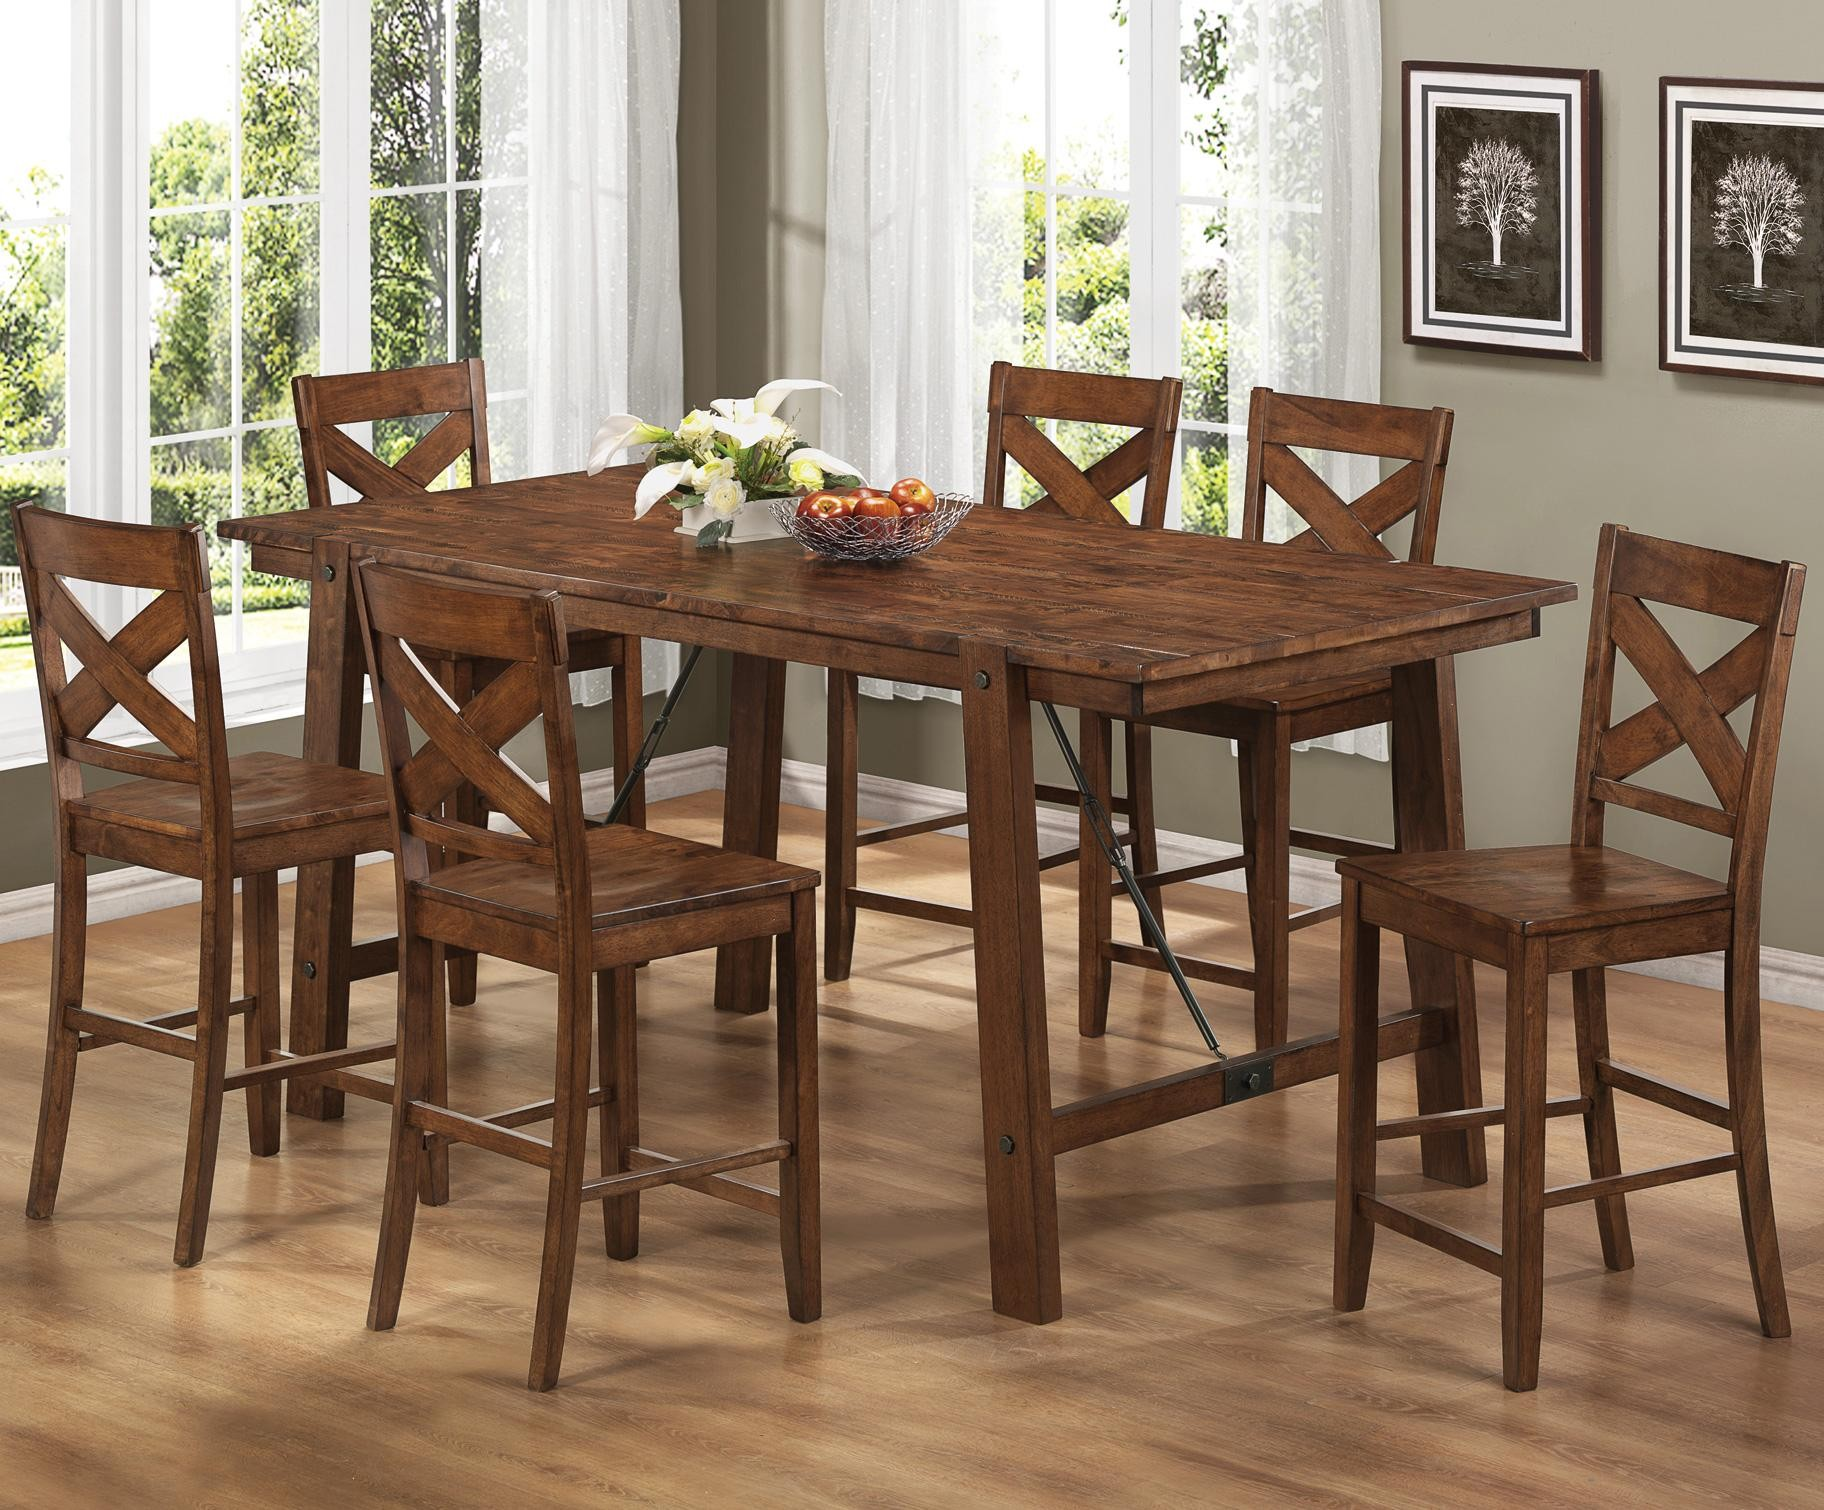 High top kitchen table sets homesfeed for High top dinette sets